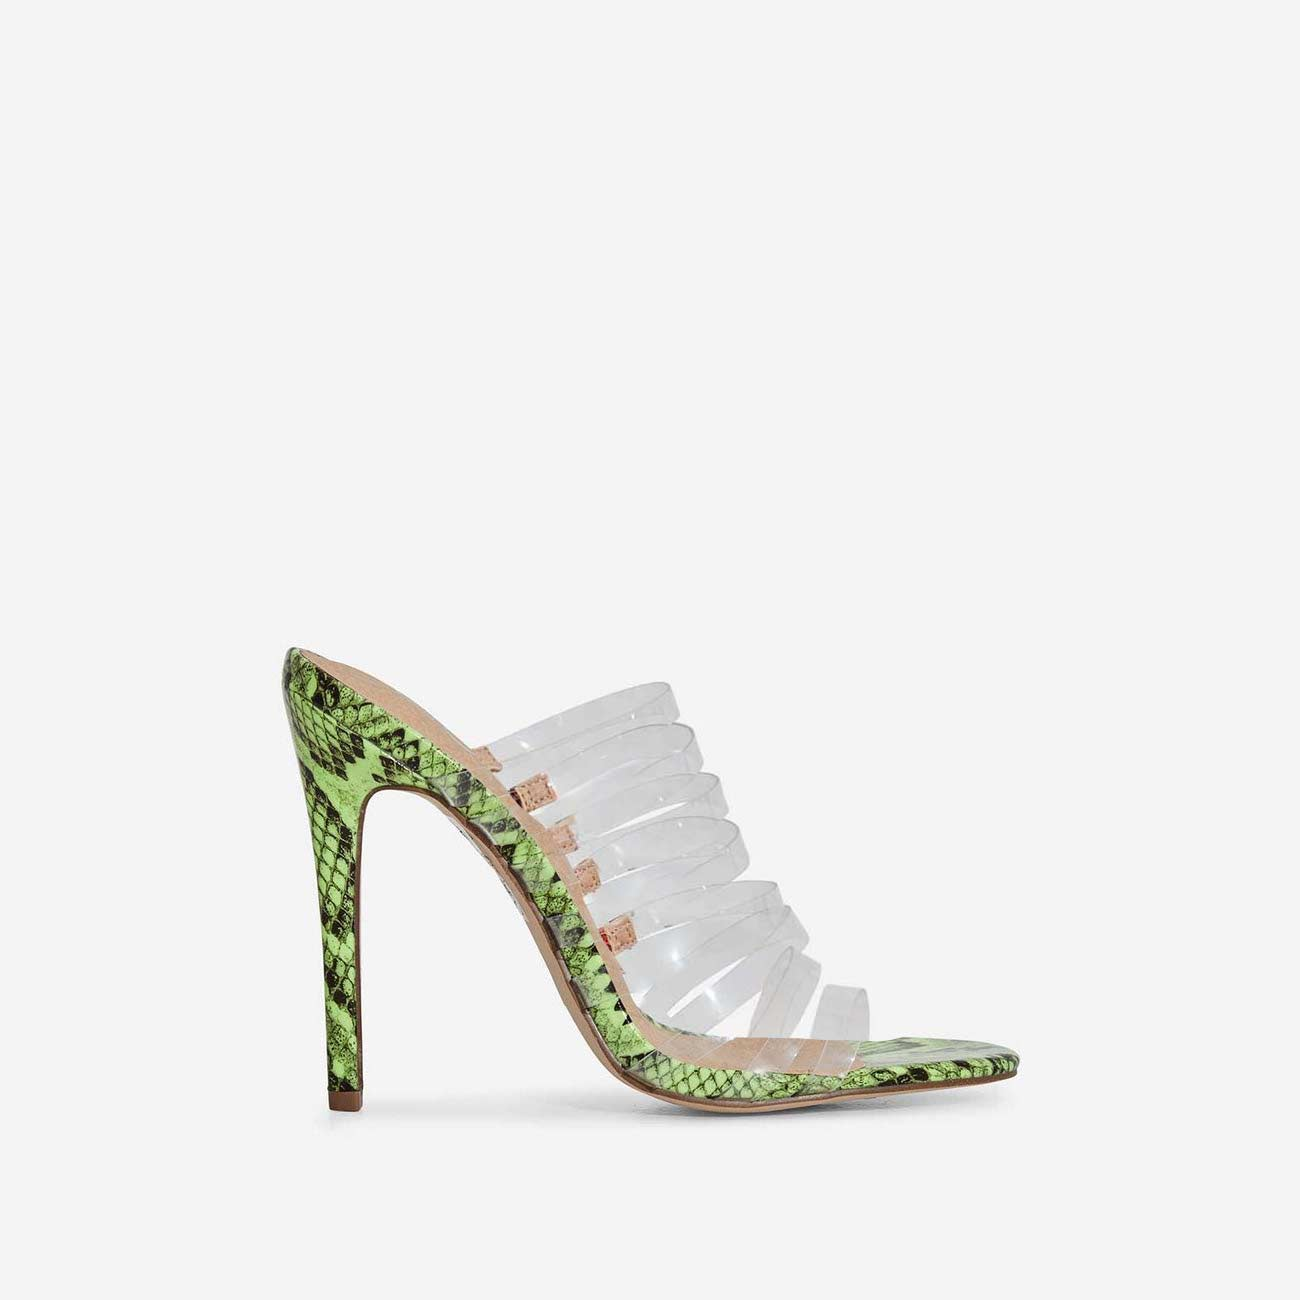 Abby Multi Strap Perspex Heel Mule In Lime Green Snake Print Faux Leather